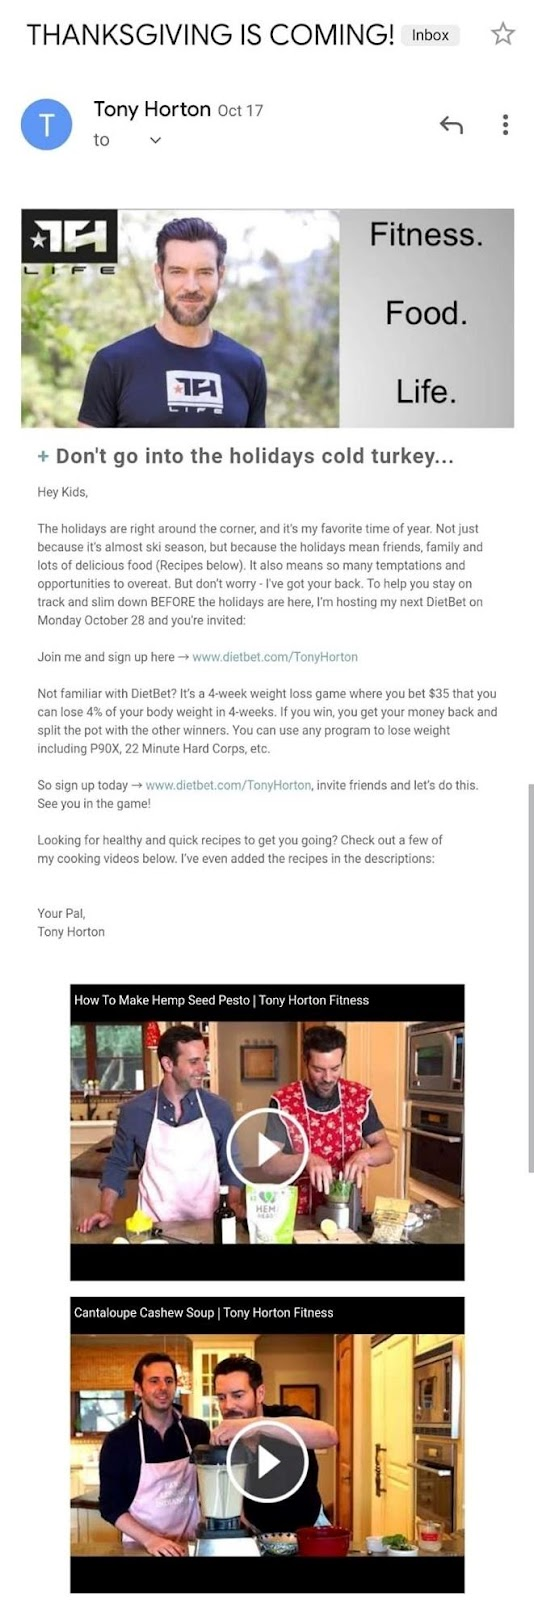 In the following example by celebrity trainer Tony Horton, you'll see he gets creative and shares a variety of recipes with his clients.